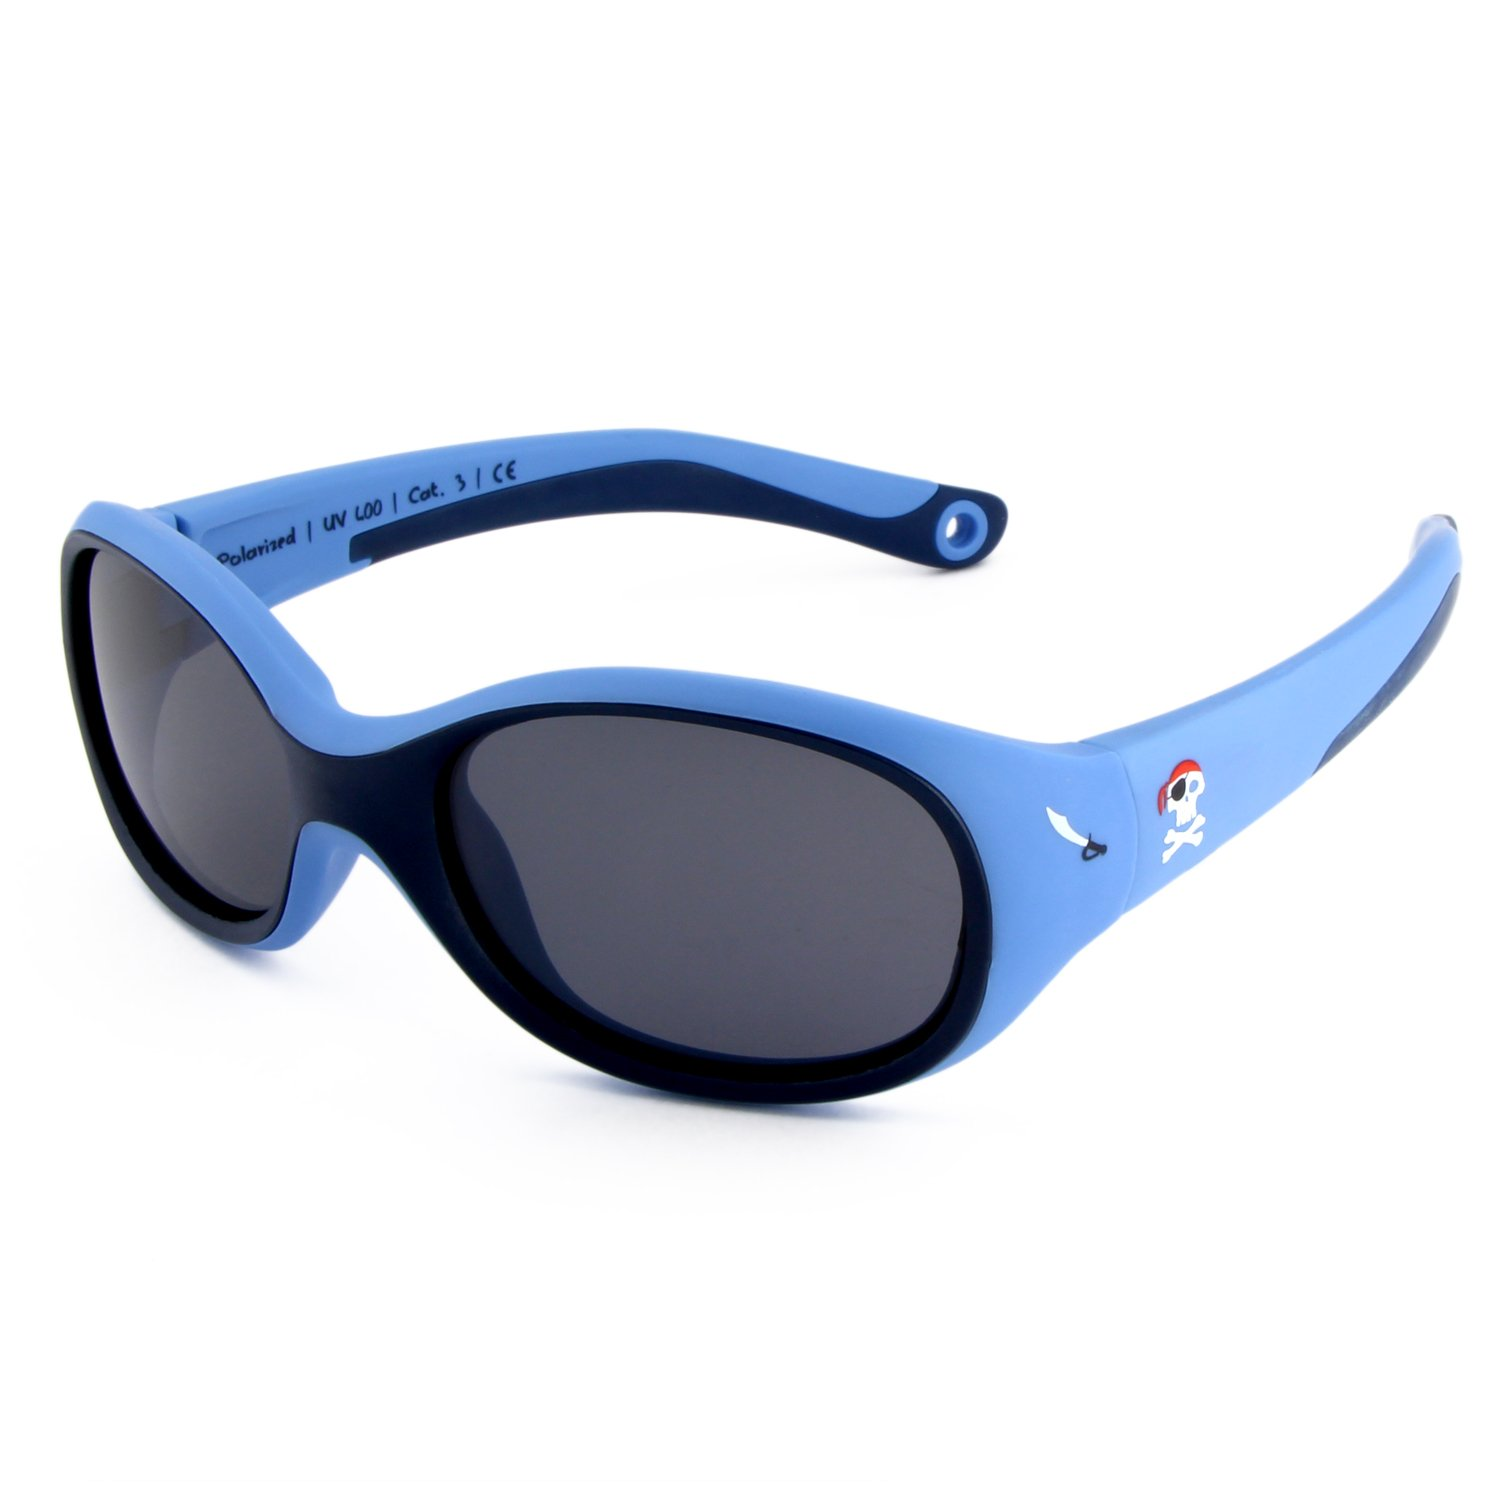 Active Sol KIDS Sunglasses | BOYS | 100% UV 400 protection | polarised | indestructible (made of flexible rubber) | 2-6 years | 22 grams 40.03.041